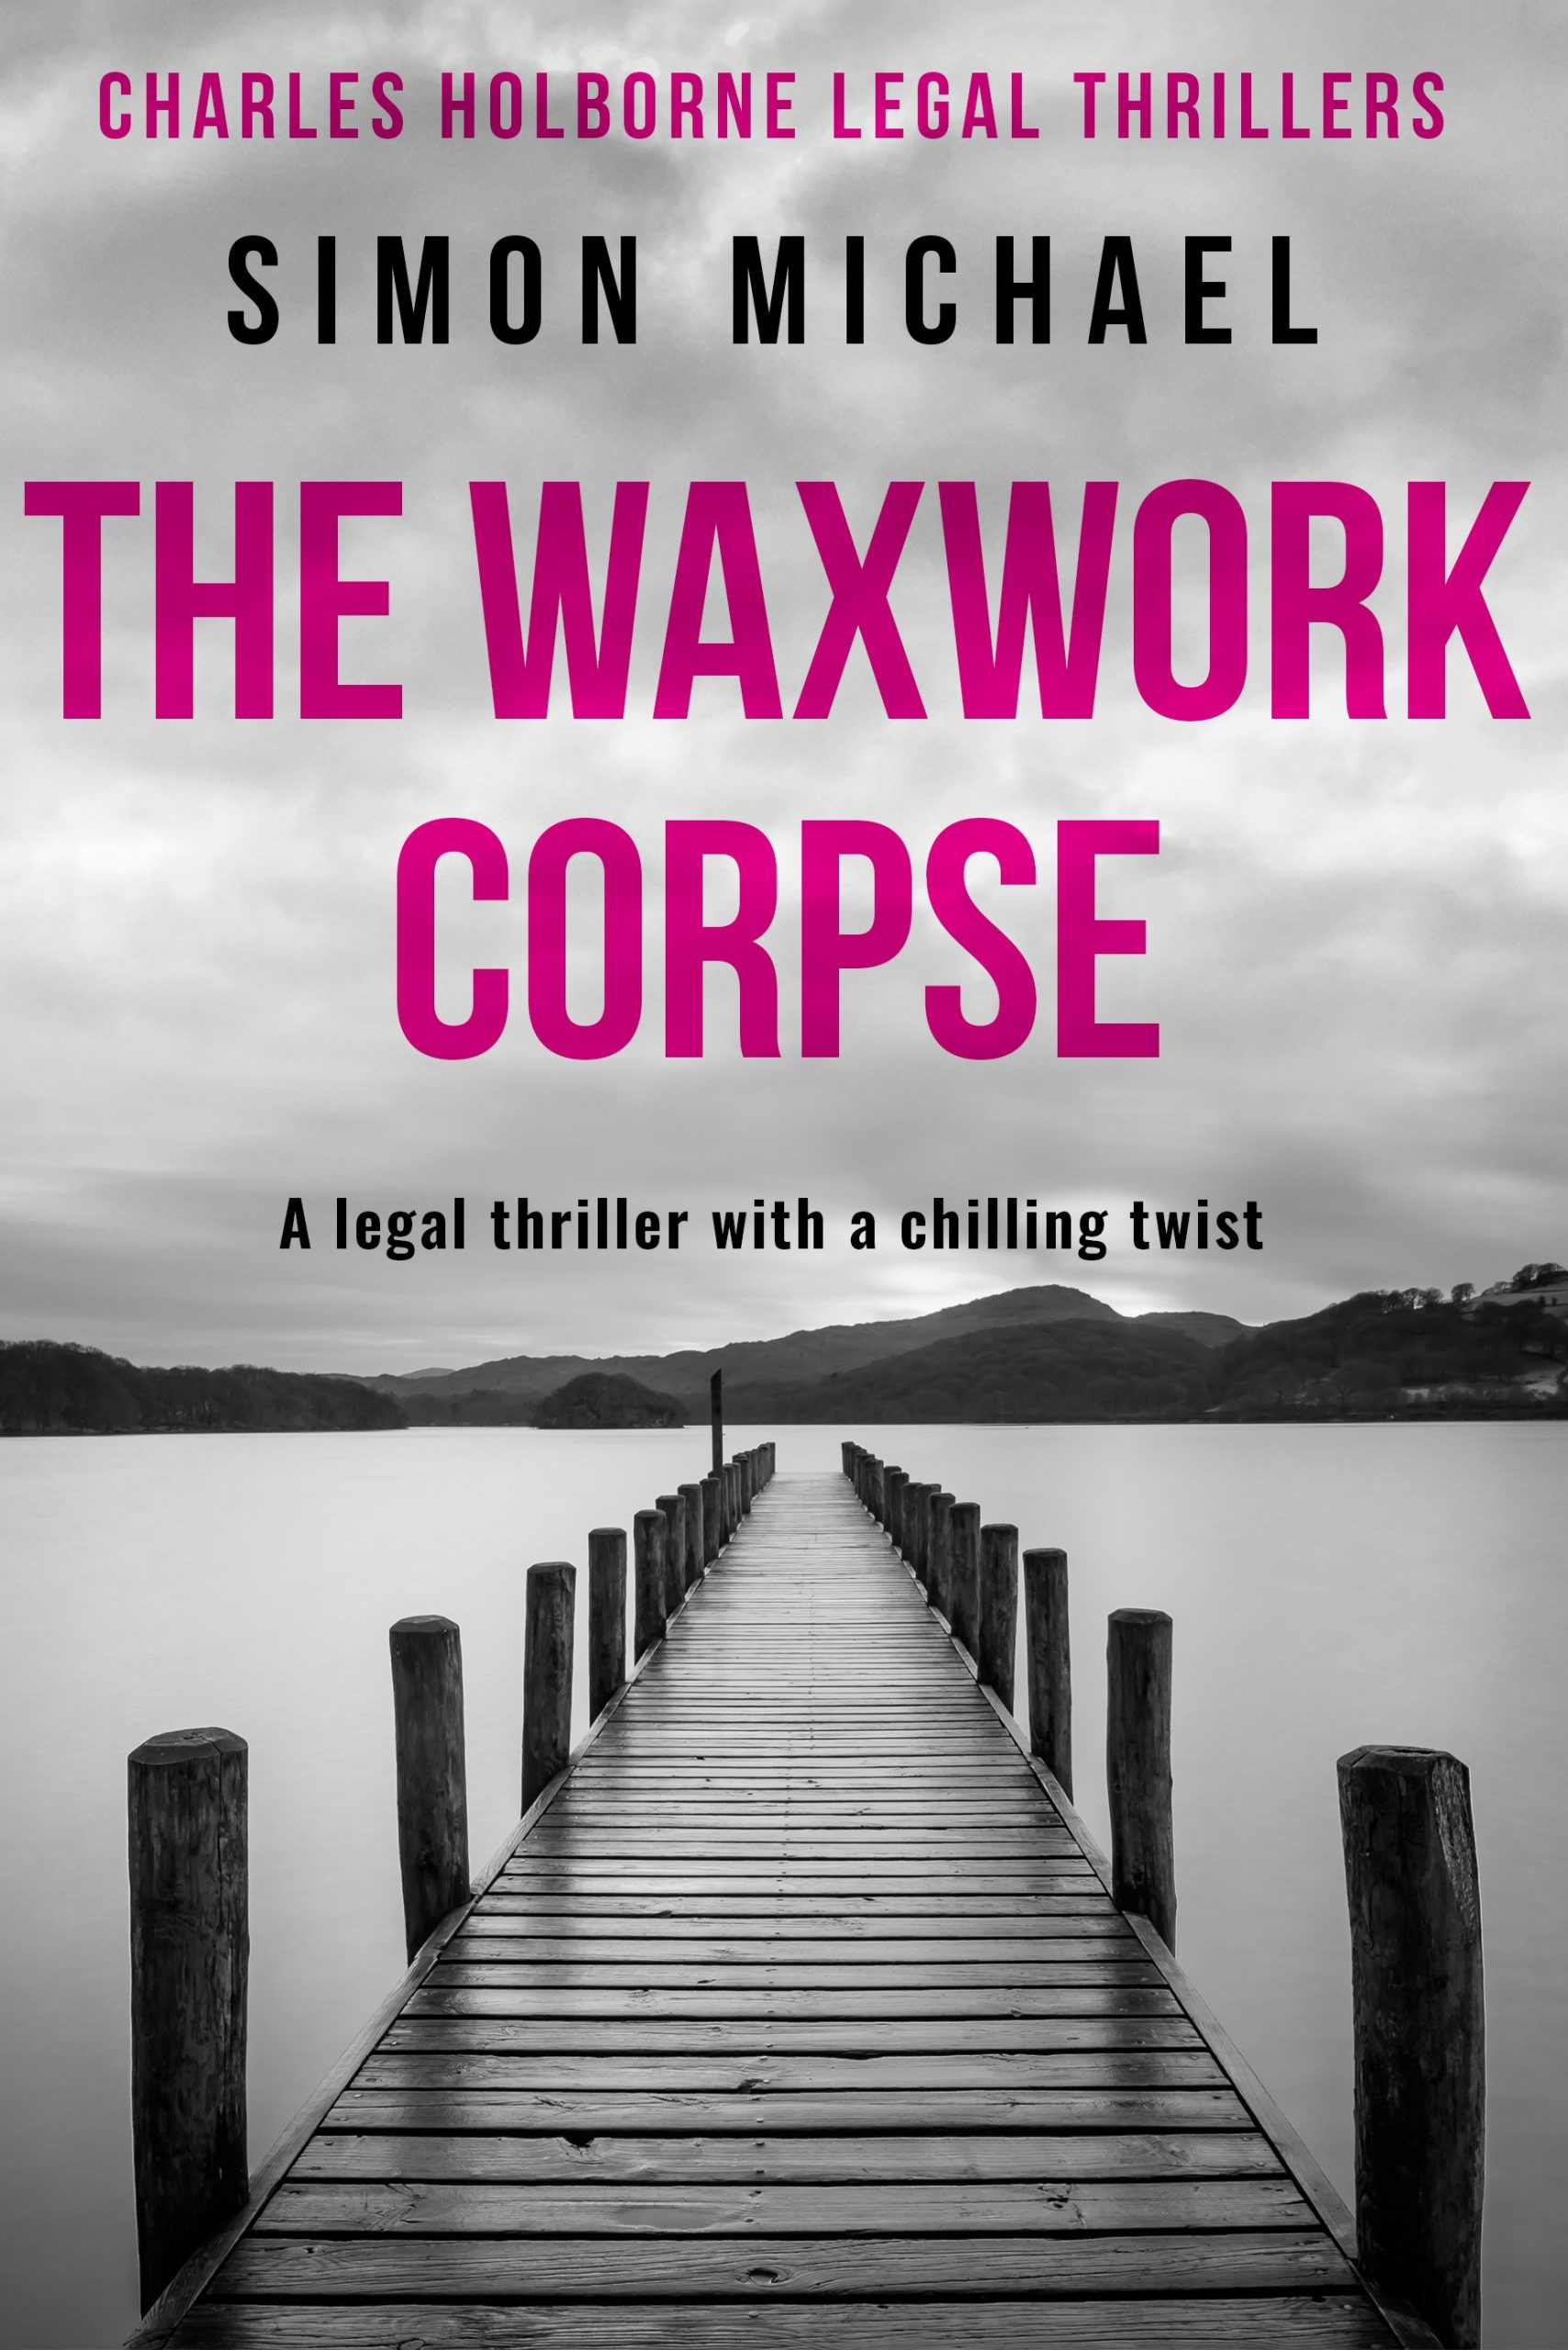 The Waxwork Corpse Book Review